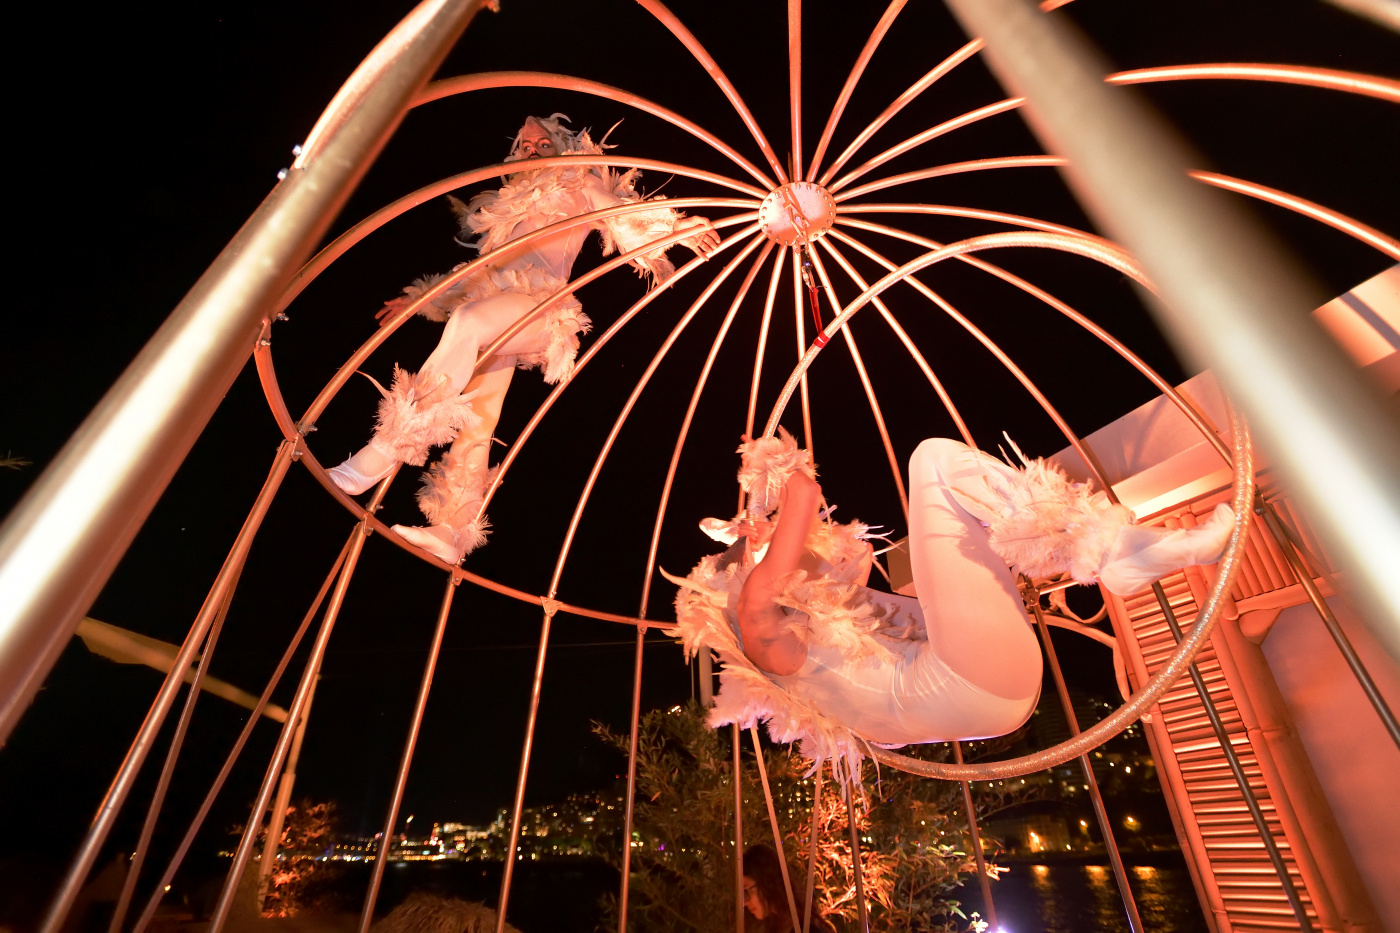 acrobats with white bird costumes as birthday party entertainment